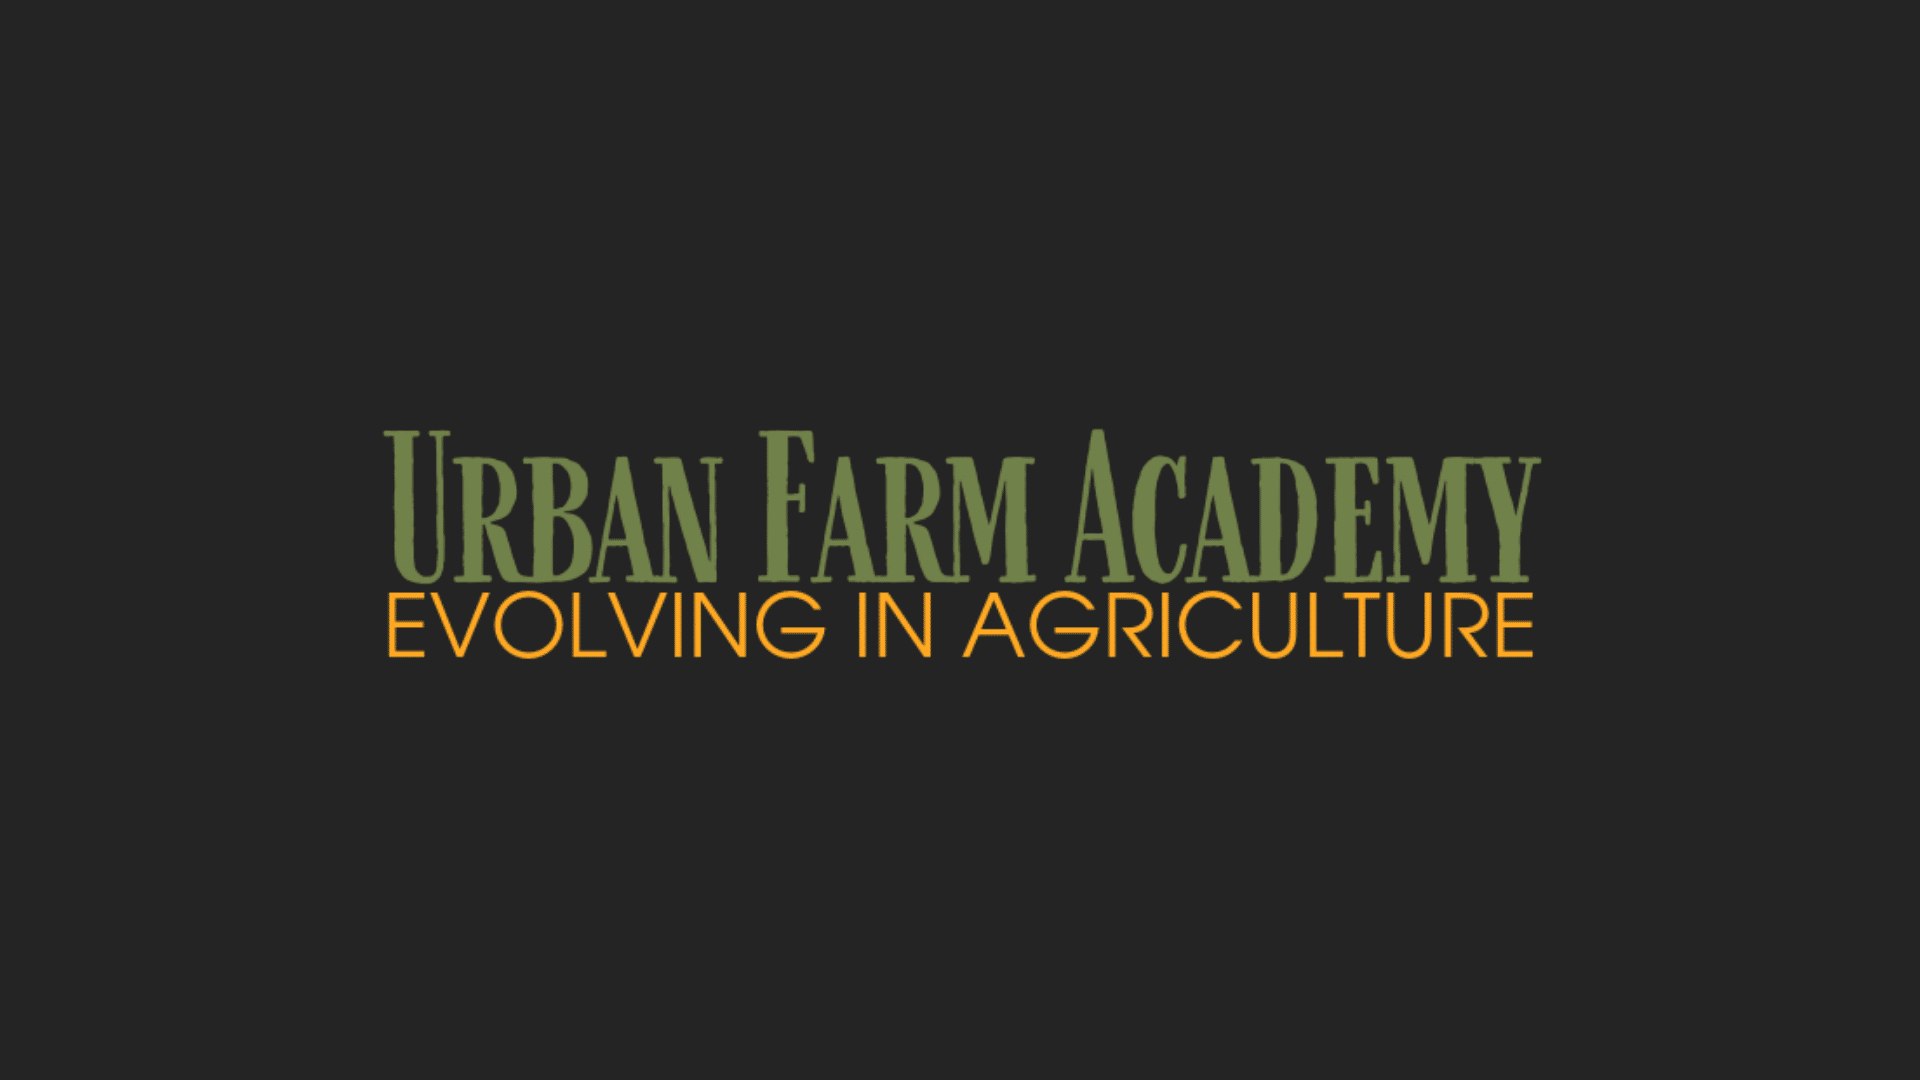 Urban Farm Academy